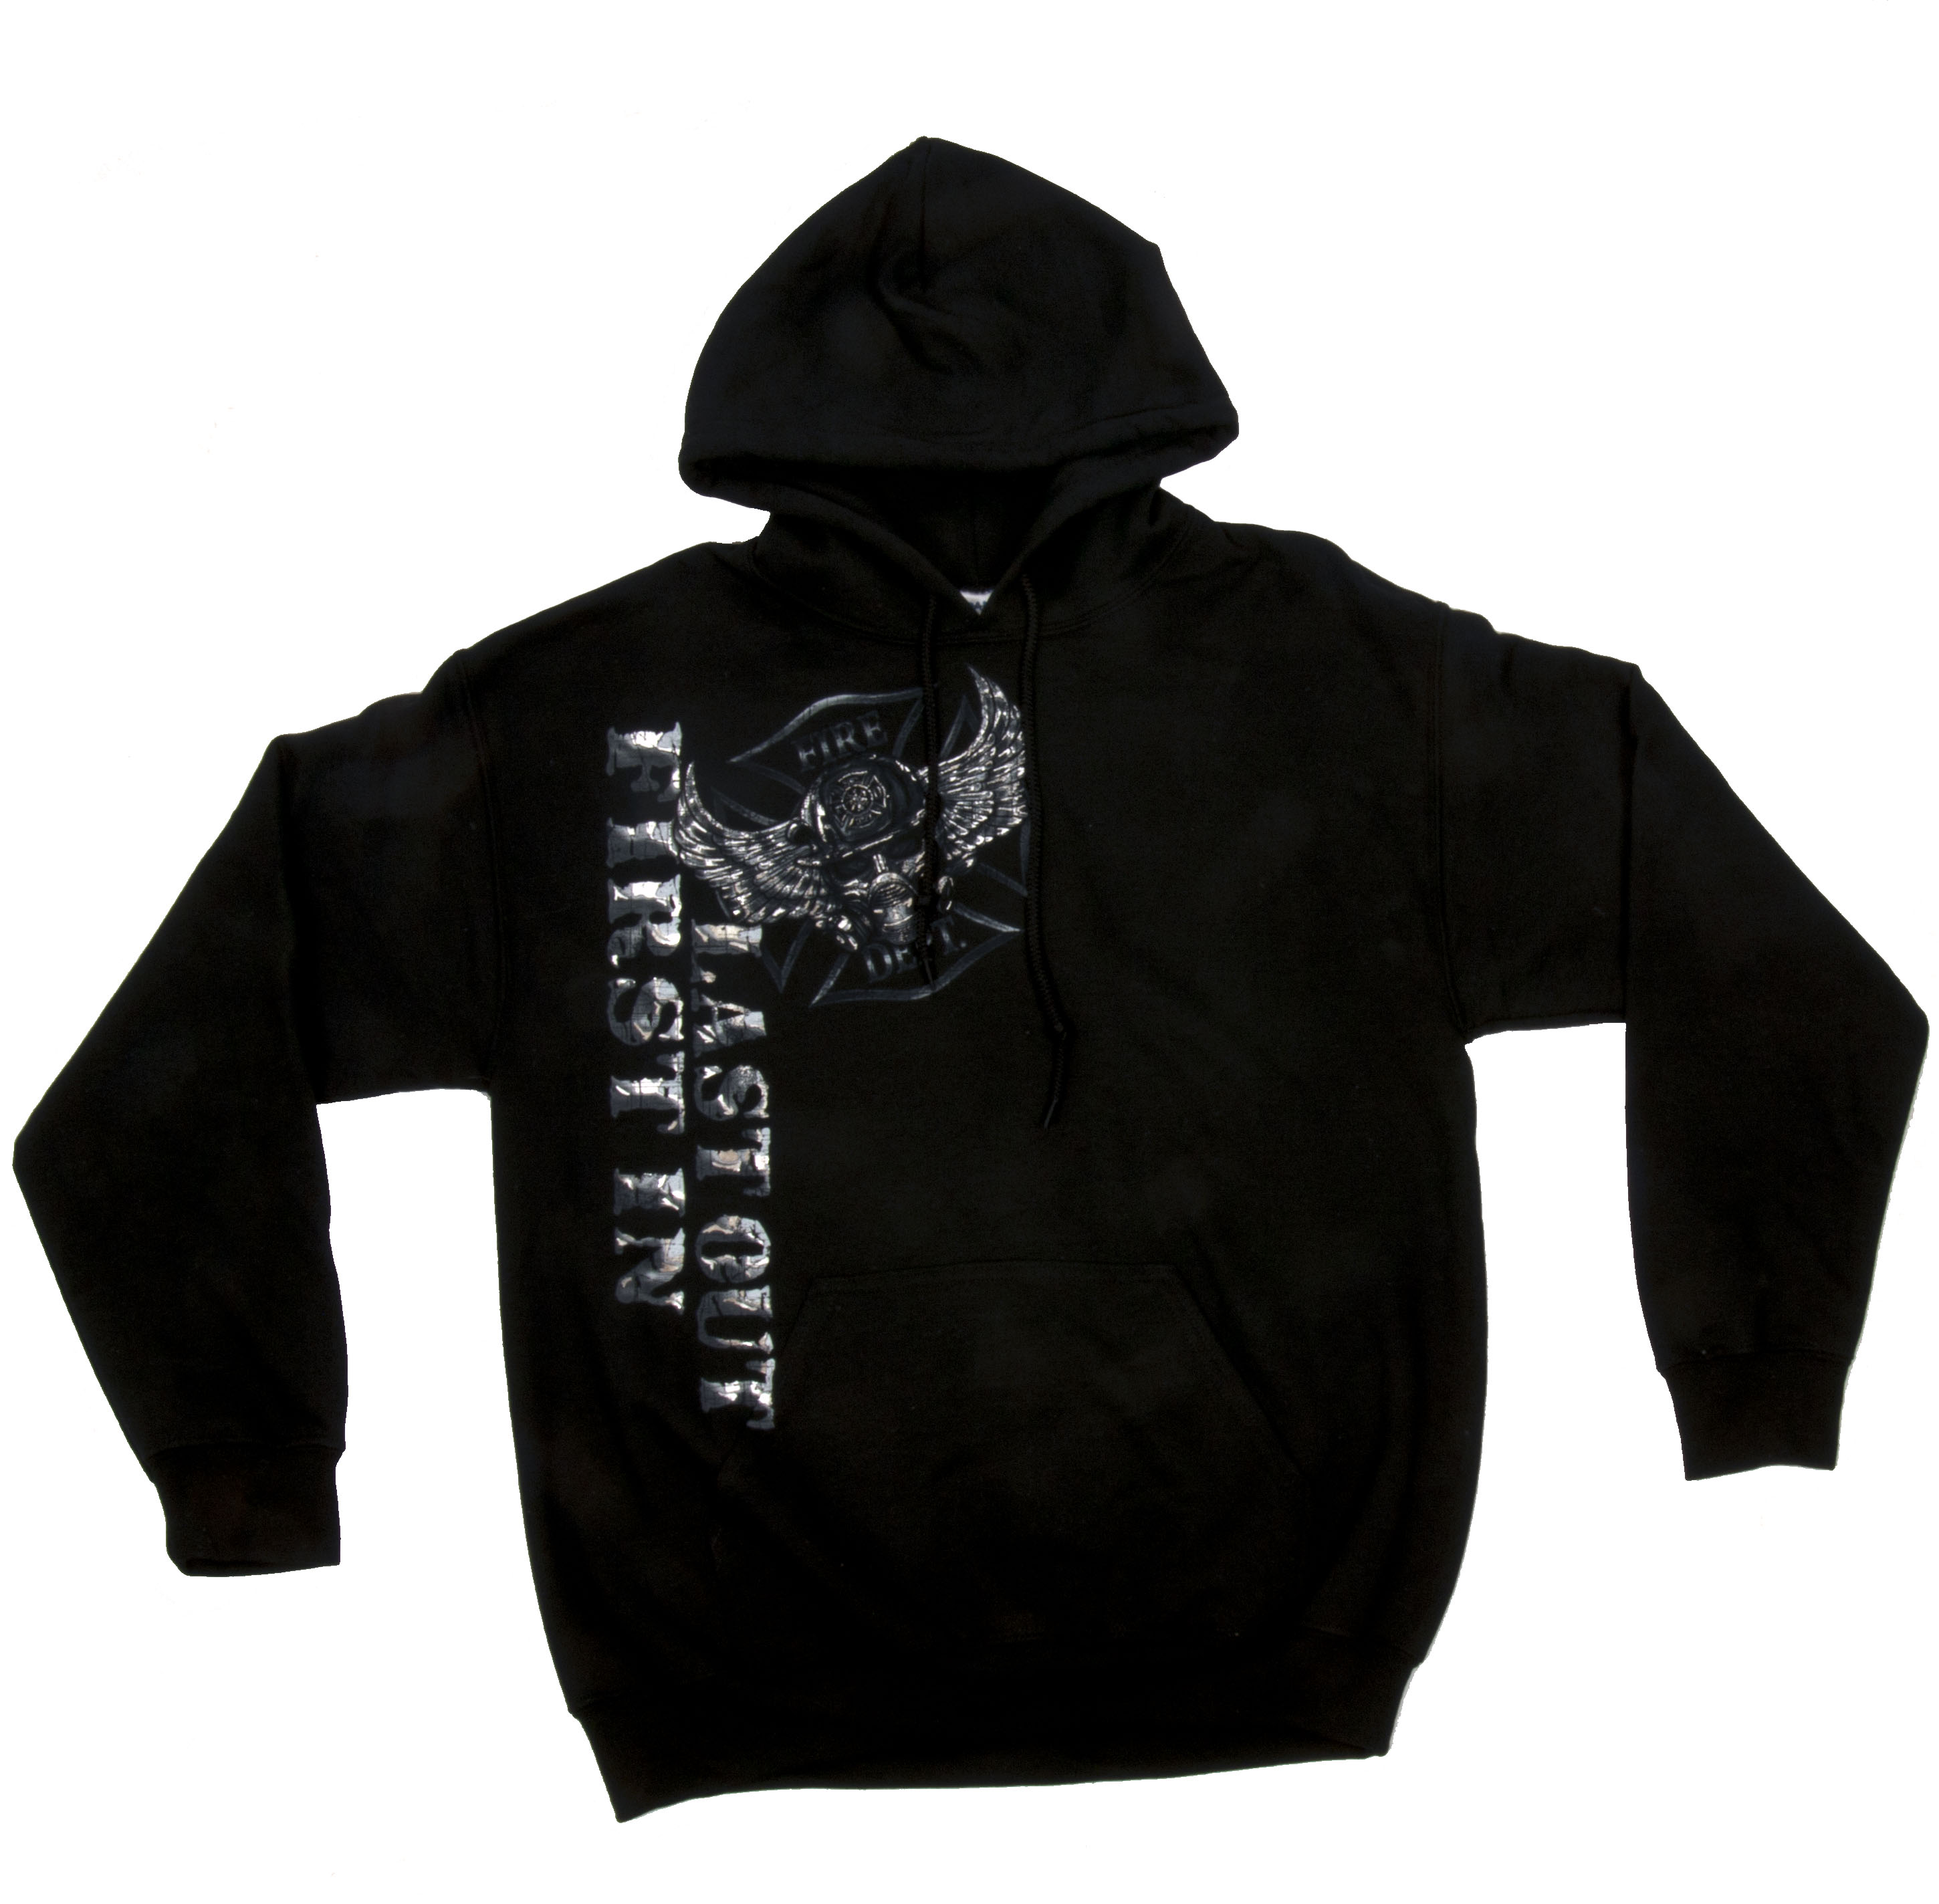 First In Last Out Black Hoodie